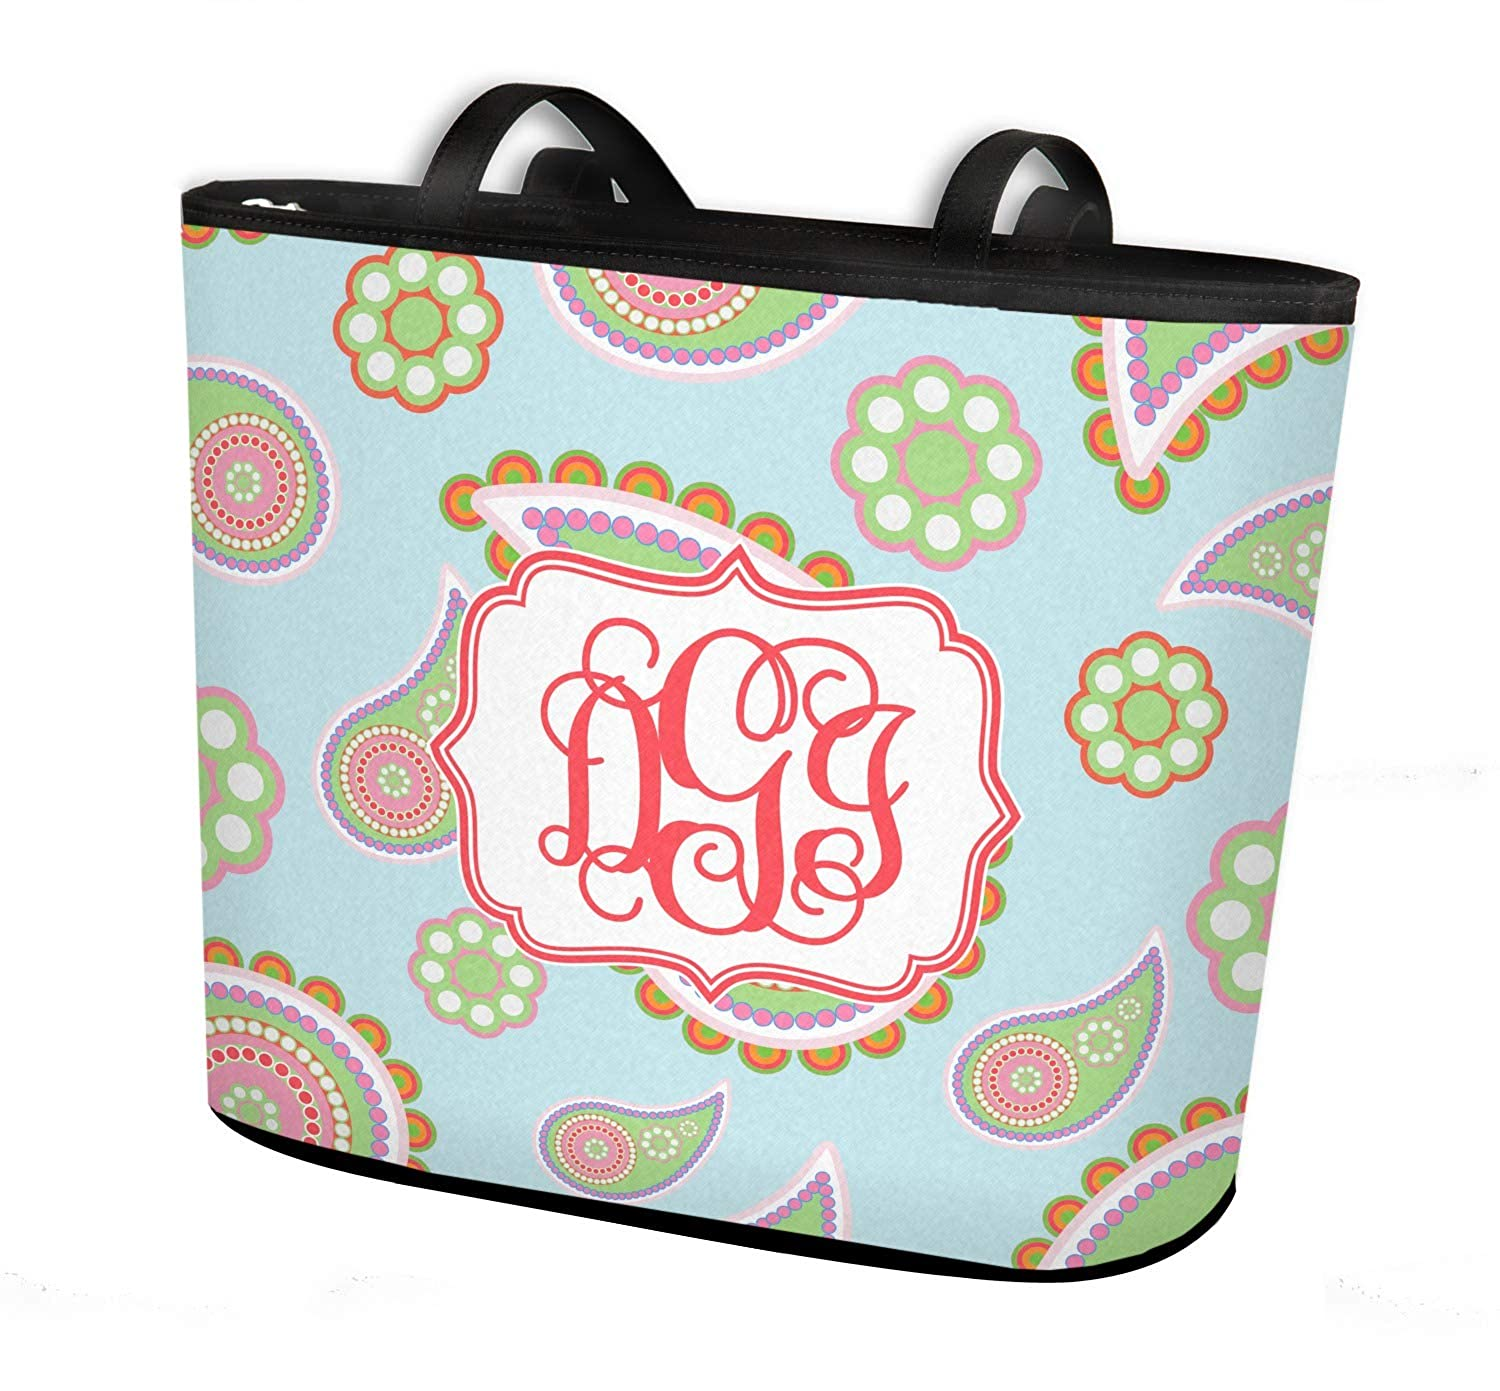 Regular w//Front /& Back Design Blue Paisley Bucket Tote w//Genuine Leather Trim Personalized